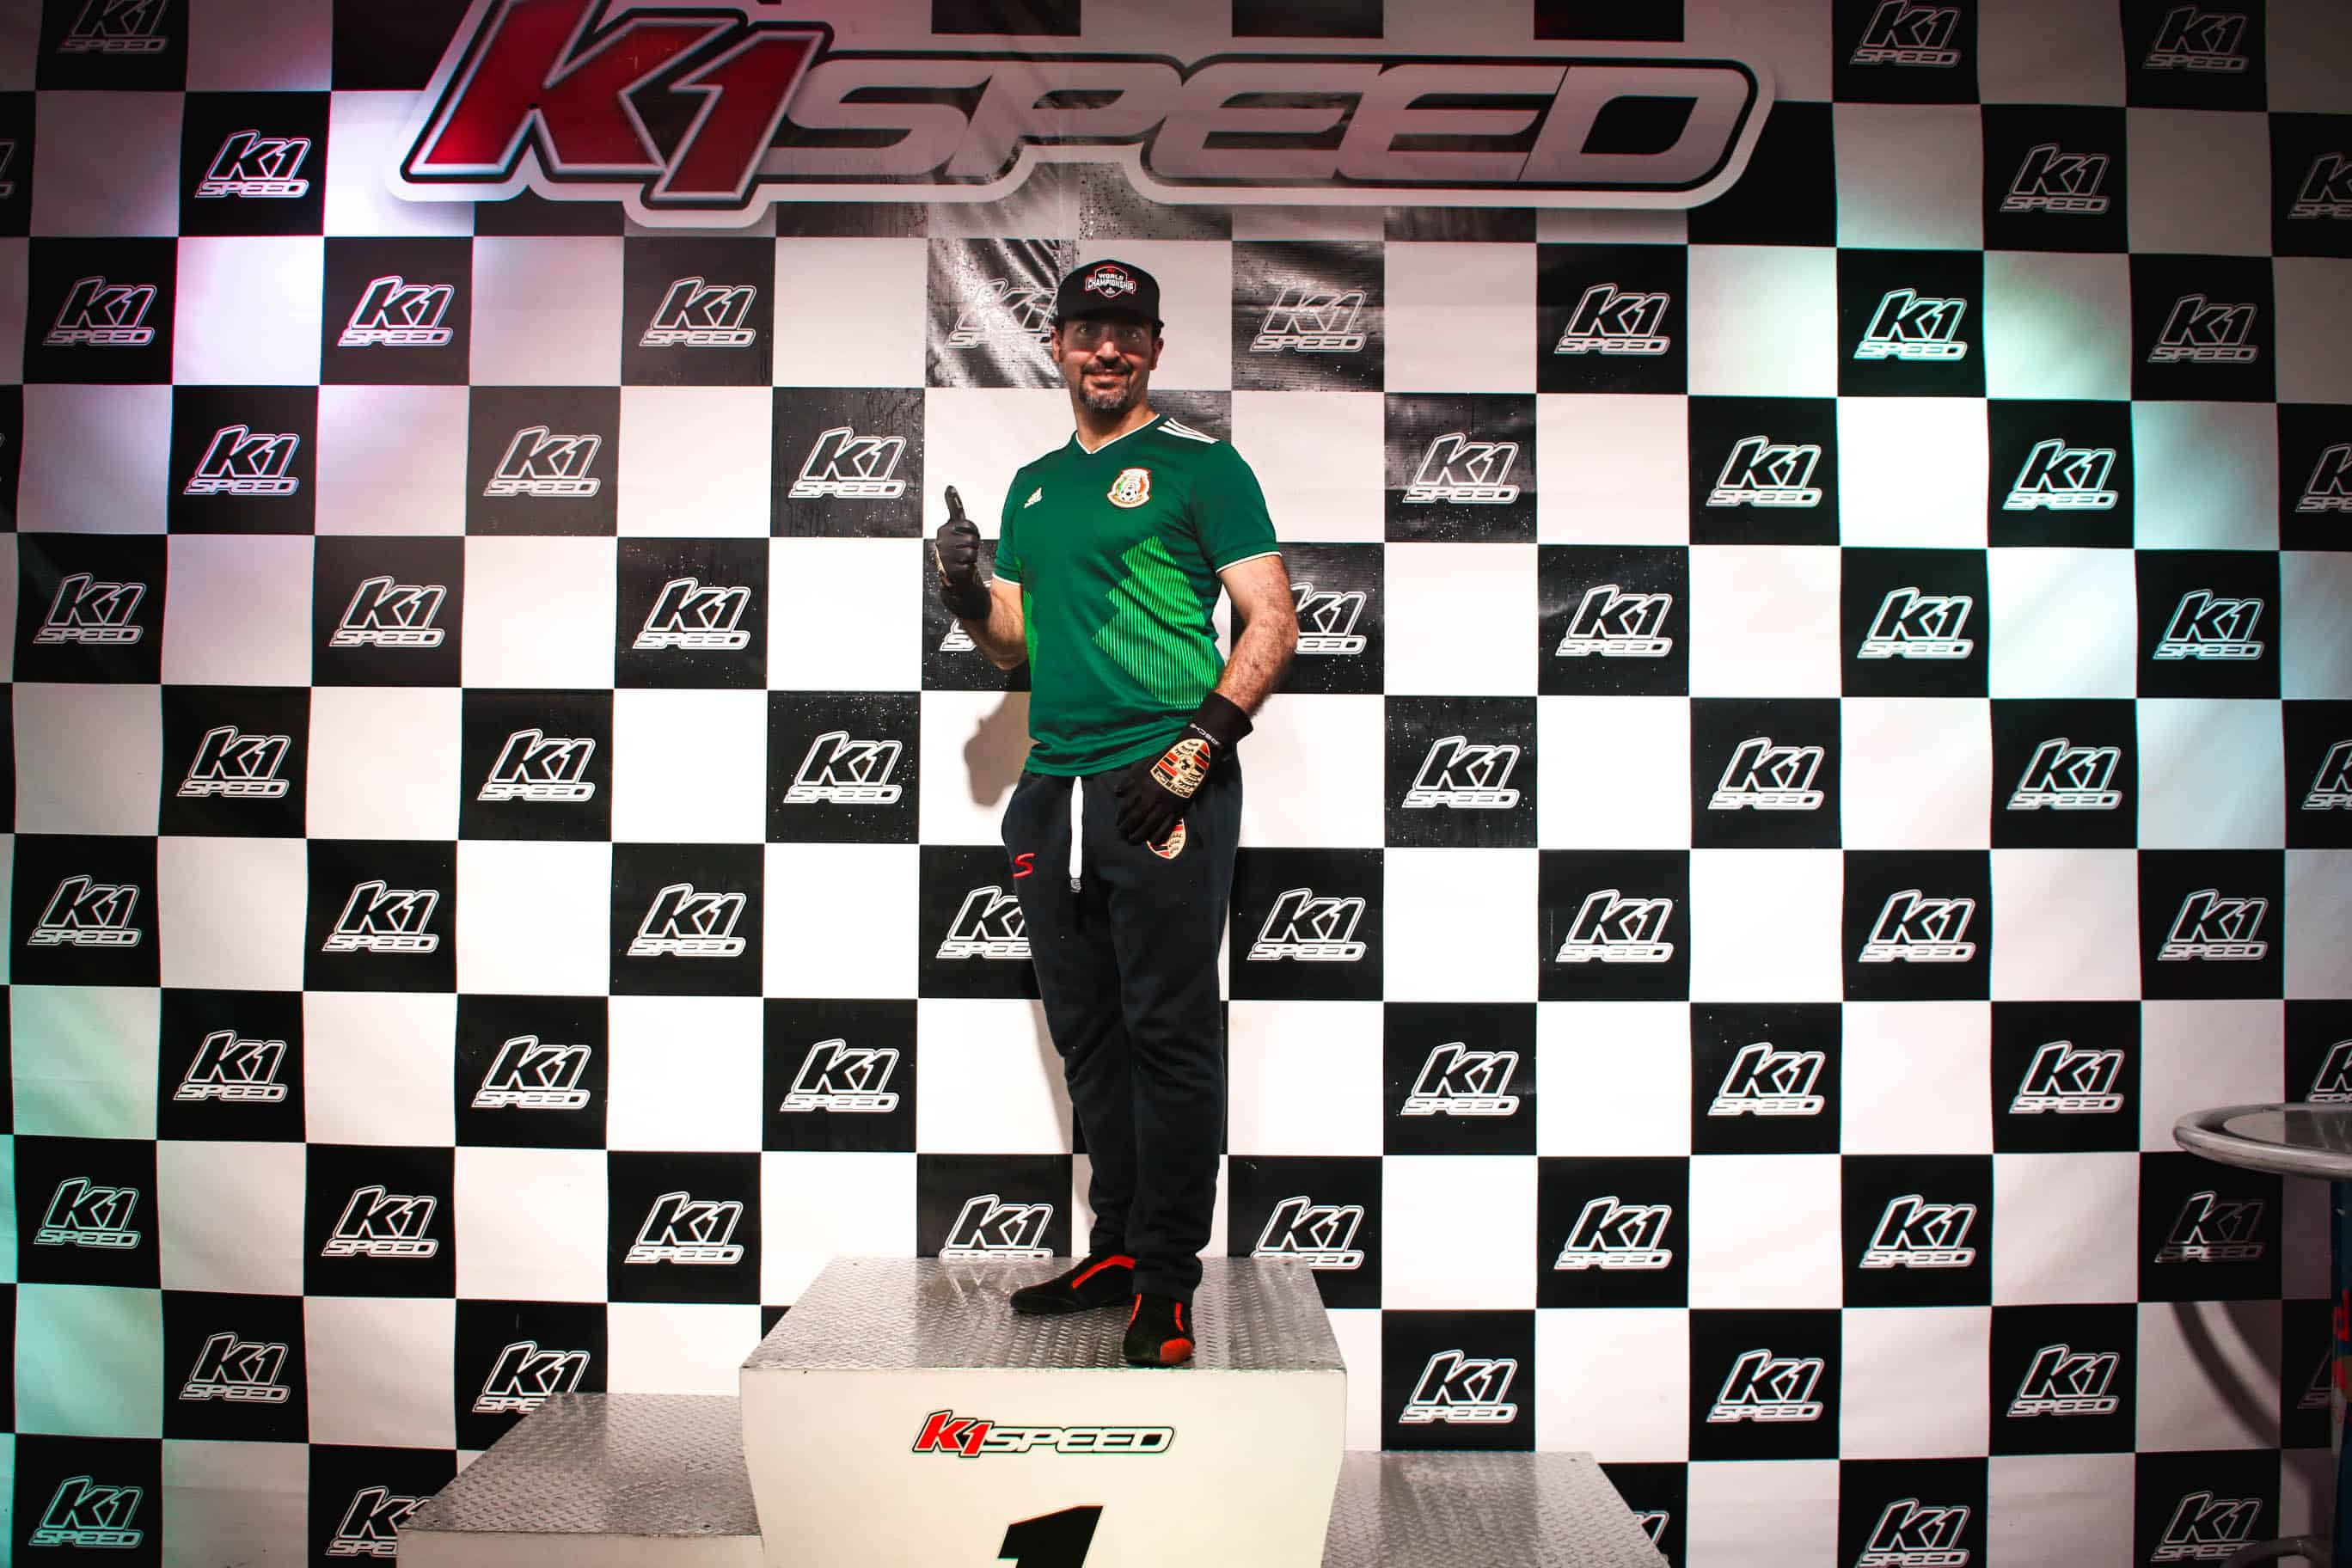 Mexico's Luis Enrique Peña Caballero stands on the podium during the K1 Speed World Championship